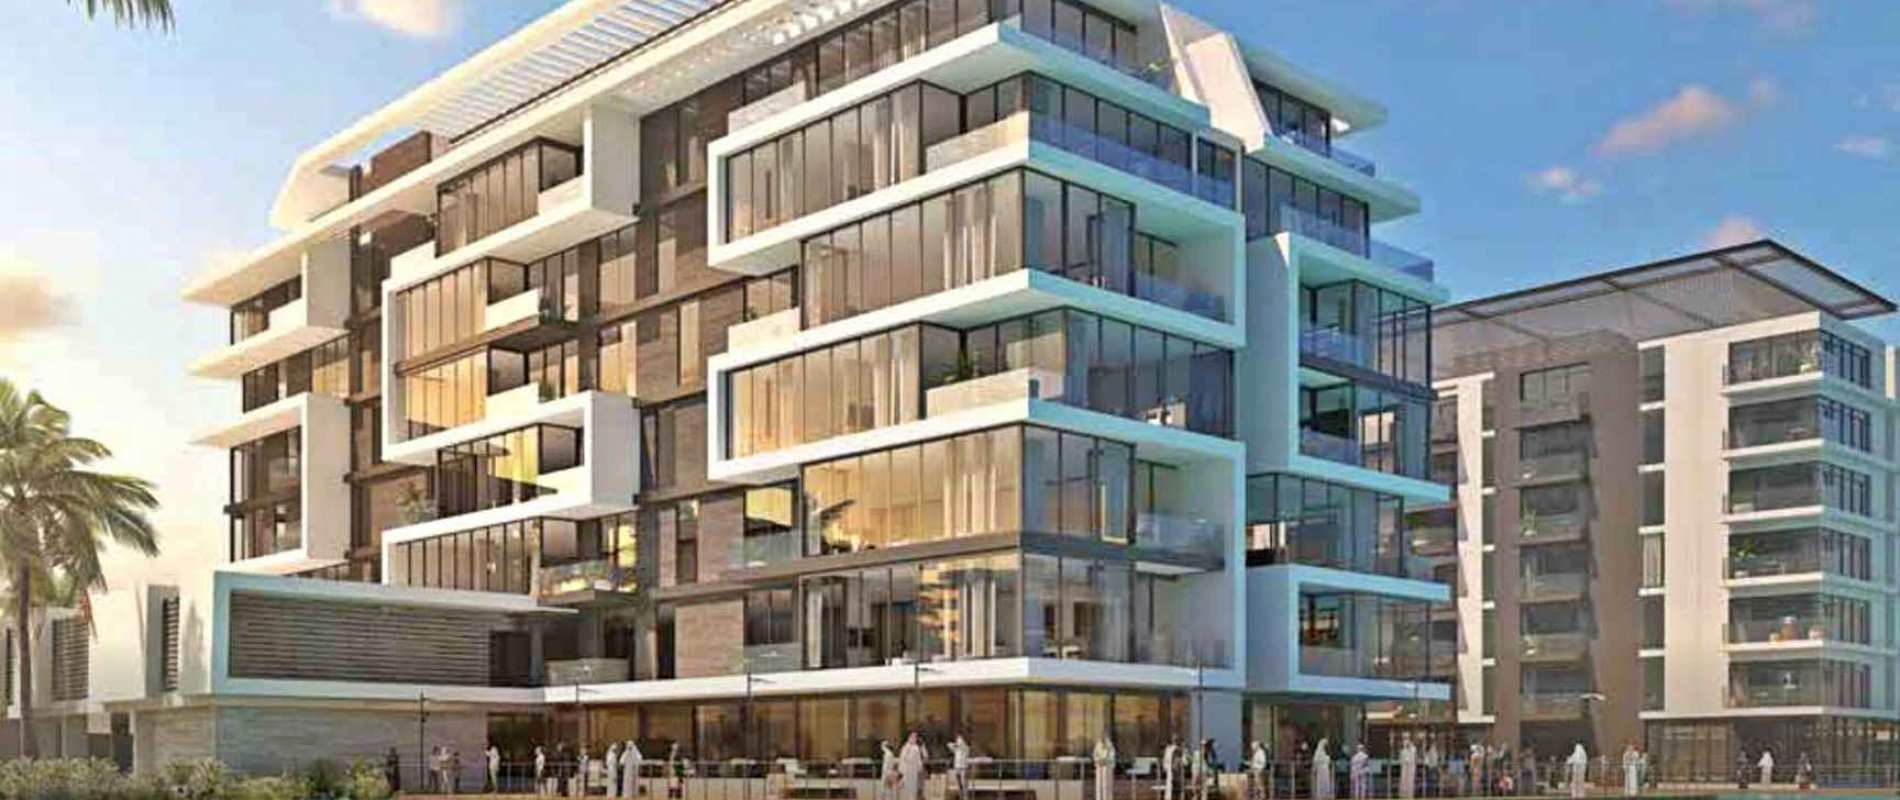 Luxury Property Dubai  - Property for sale in Residences District One Mohammed Bin Rashid City